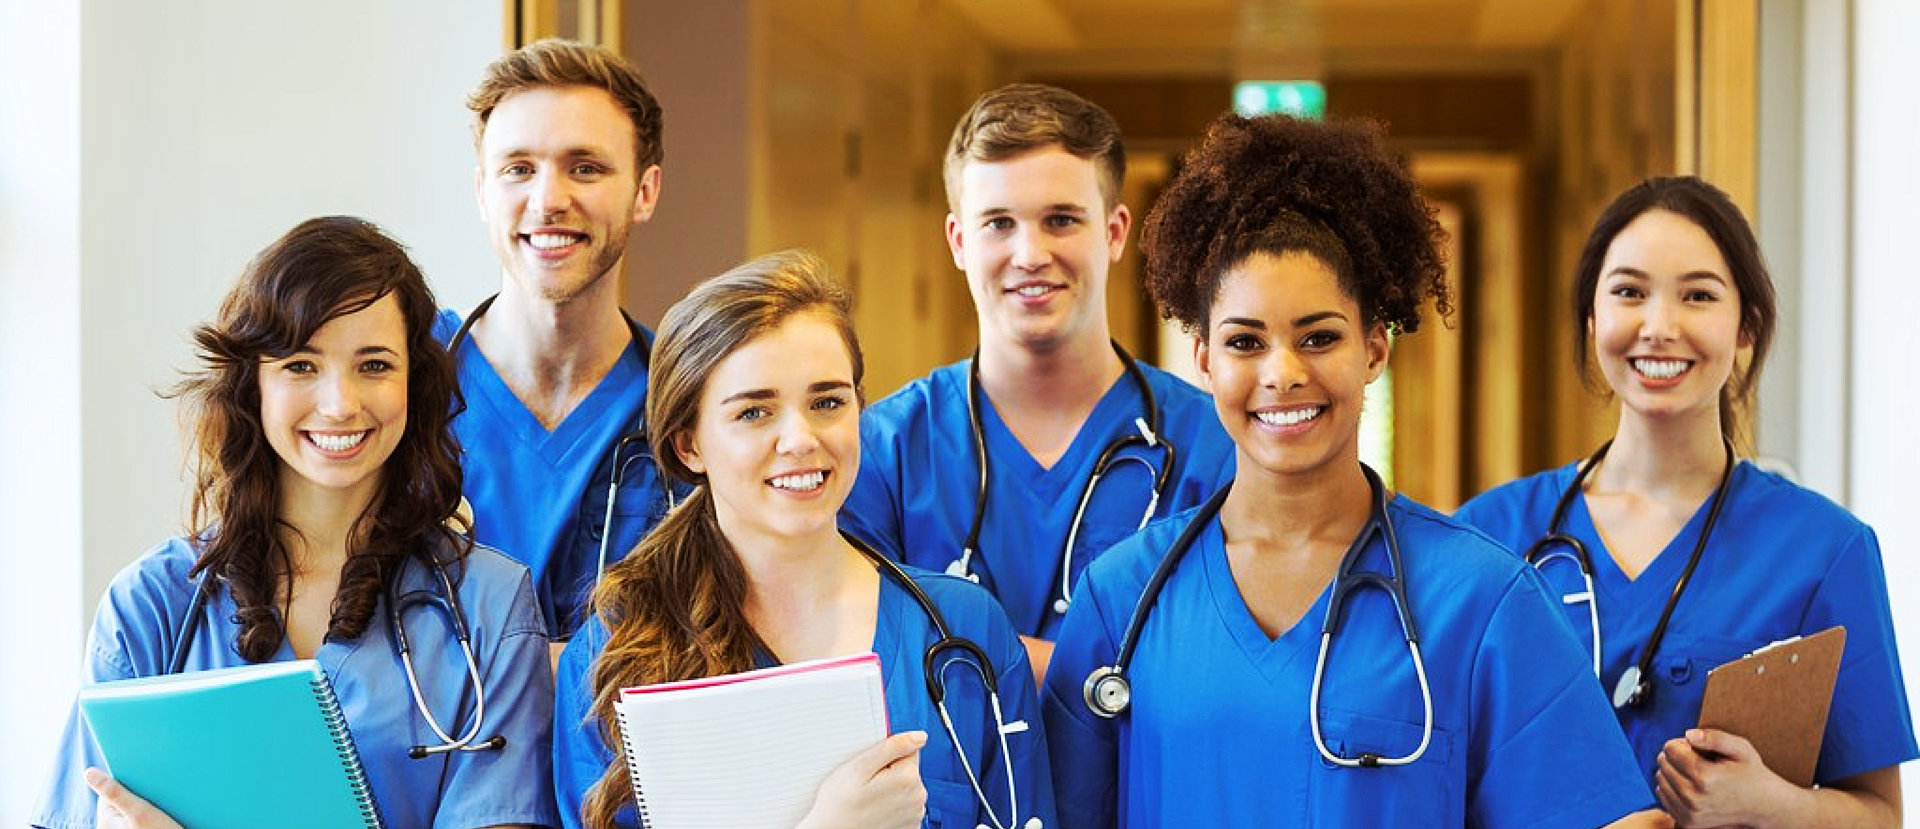 group of nurses smiling with clipboard